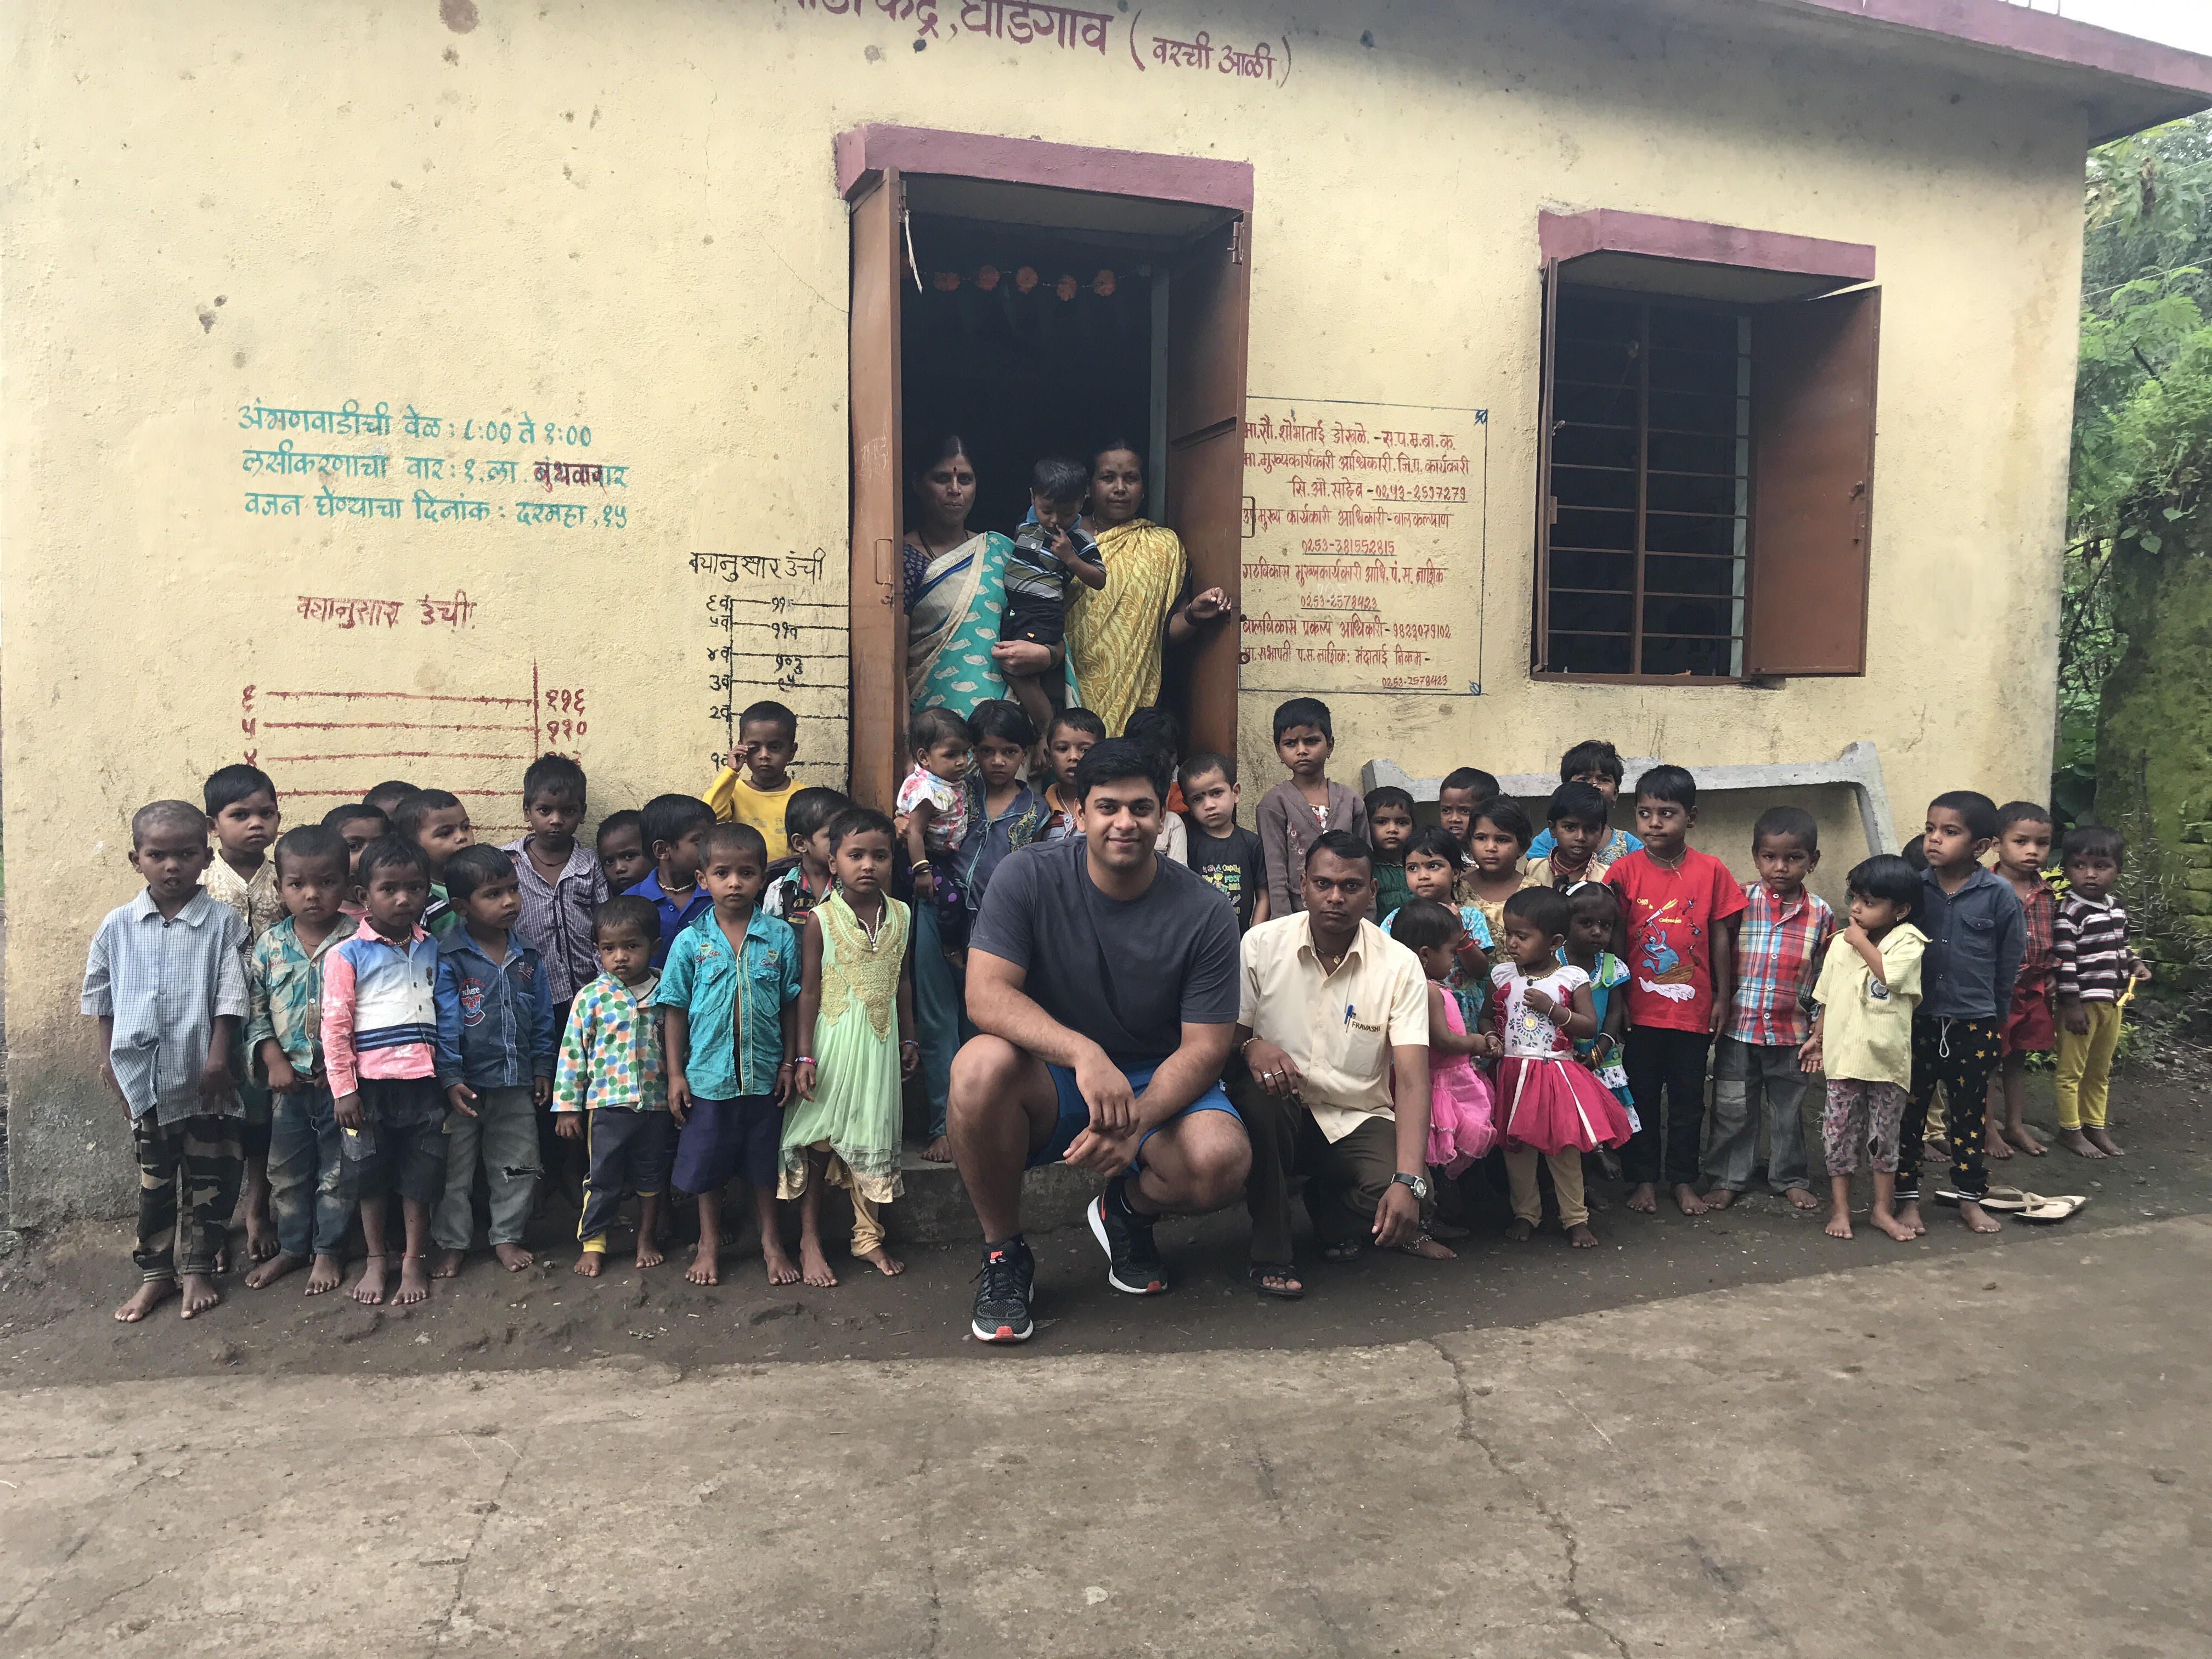 MPH student Jehan Luth traveled to India in the summer of 2017 where he completed his fieldwork with an educational institution in India that serves thousands of children breakfast, lunch, dinner, and many snacks during the day in order to improve the nutritional score of the food being served while reducing the food cost for the organization. During his time there, he was successfully able to lead a team that changed over 150,000 meals being served weekly while reducing the budget. The food served is now much more nutritionally dense than before.